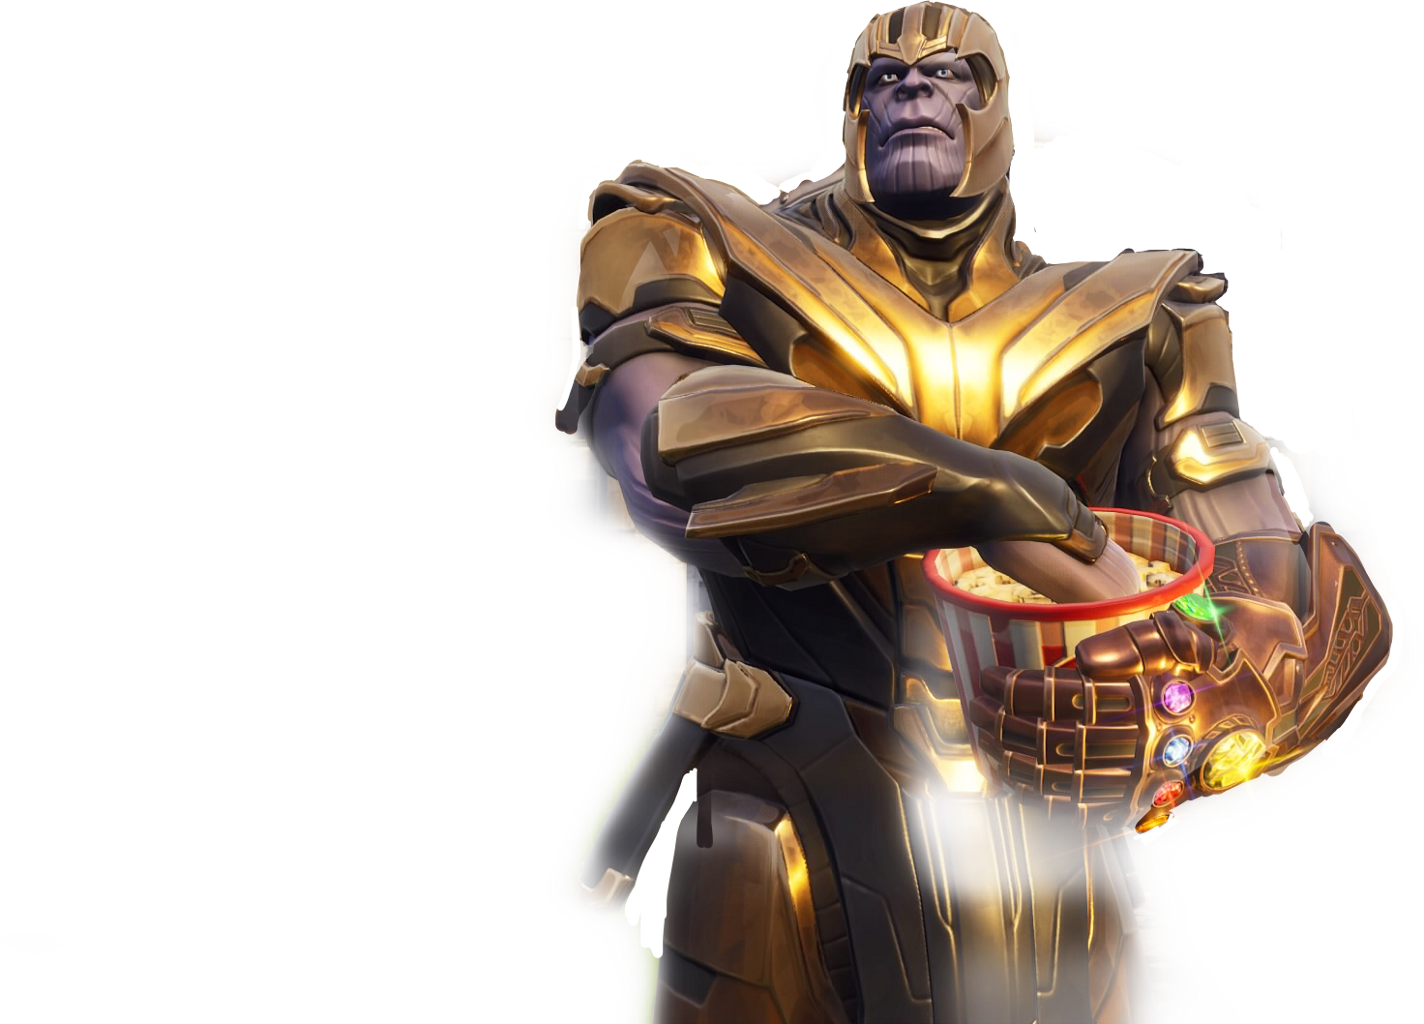 Fortnite thanos png. Interesting freetoedit report abuse